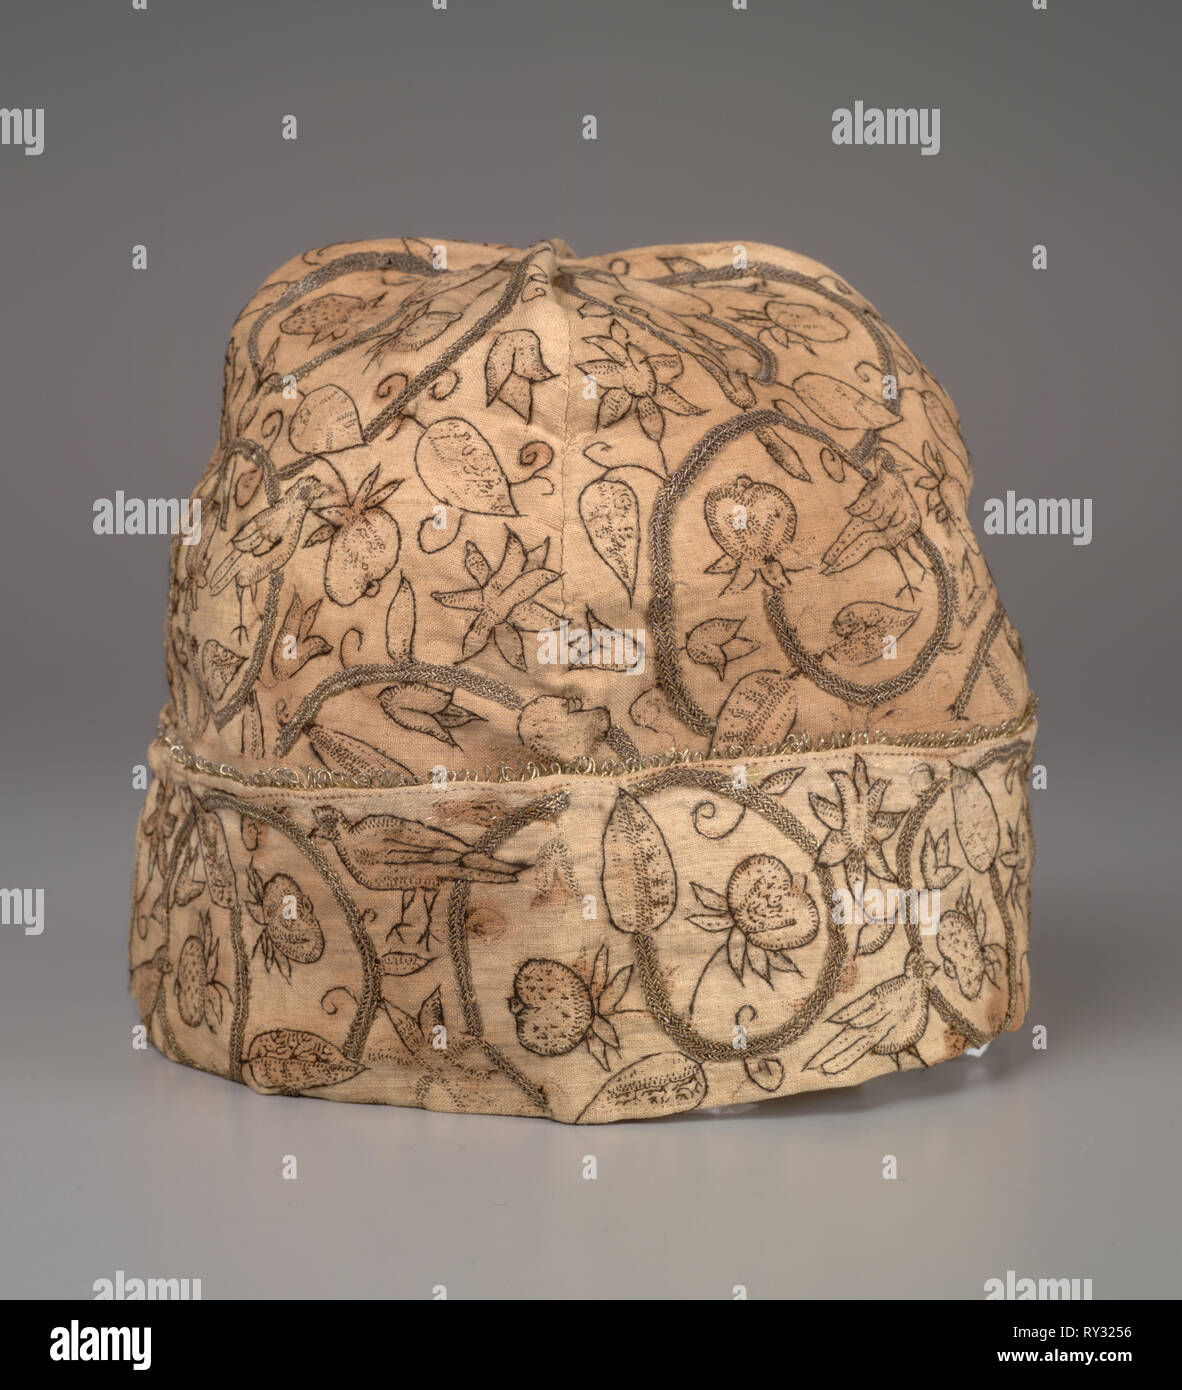 Man's Cap, late 1500s. England, Period of Queen Elizabeth, late 16th century. Embroidery; silk and silver gilt thread on linen; overall: 16 x 18 x 18 cm (6 5/16 x 7 1/16 x 7 1/16 in - Stock Image